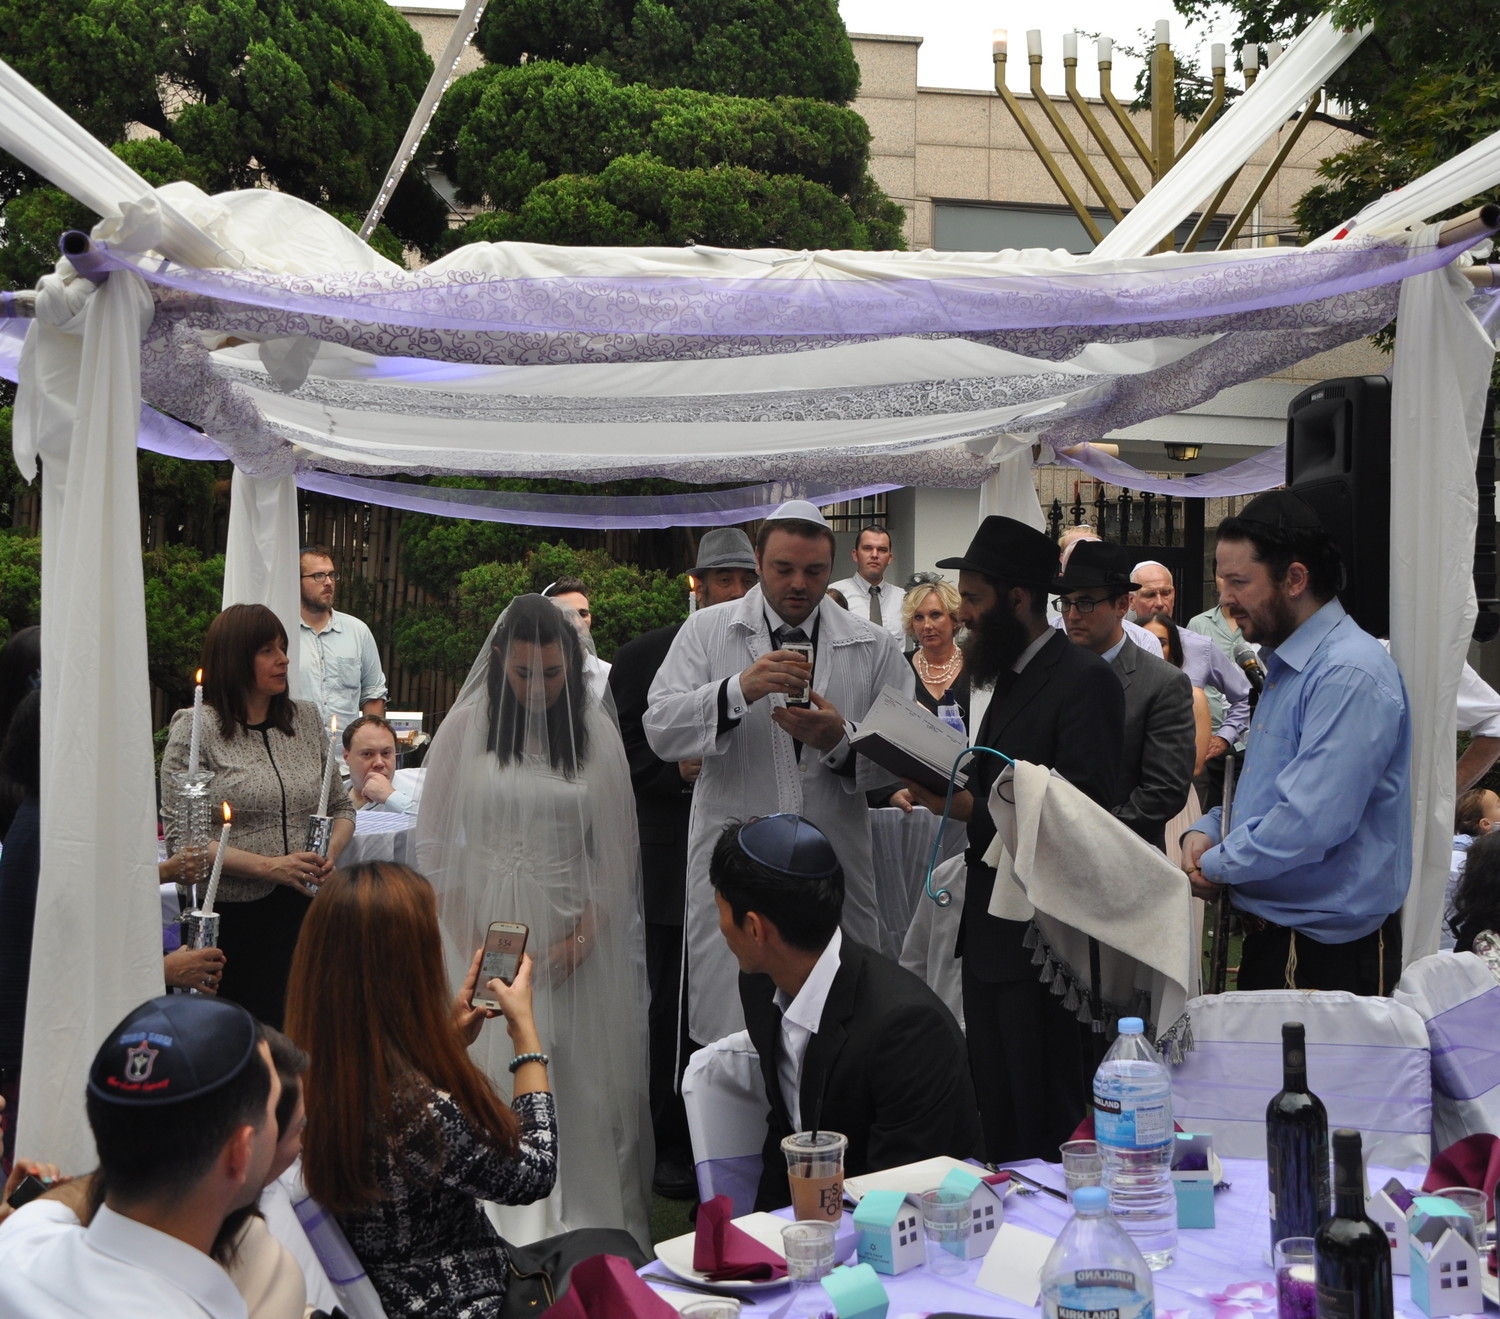 Rabbi Osher Litzman, under chuppah in black, performing a Jewish wedding in Seoul.